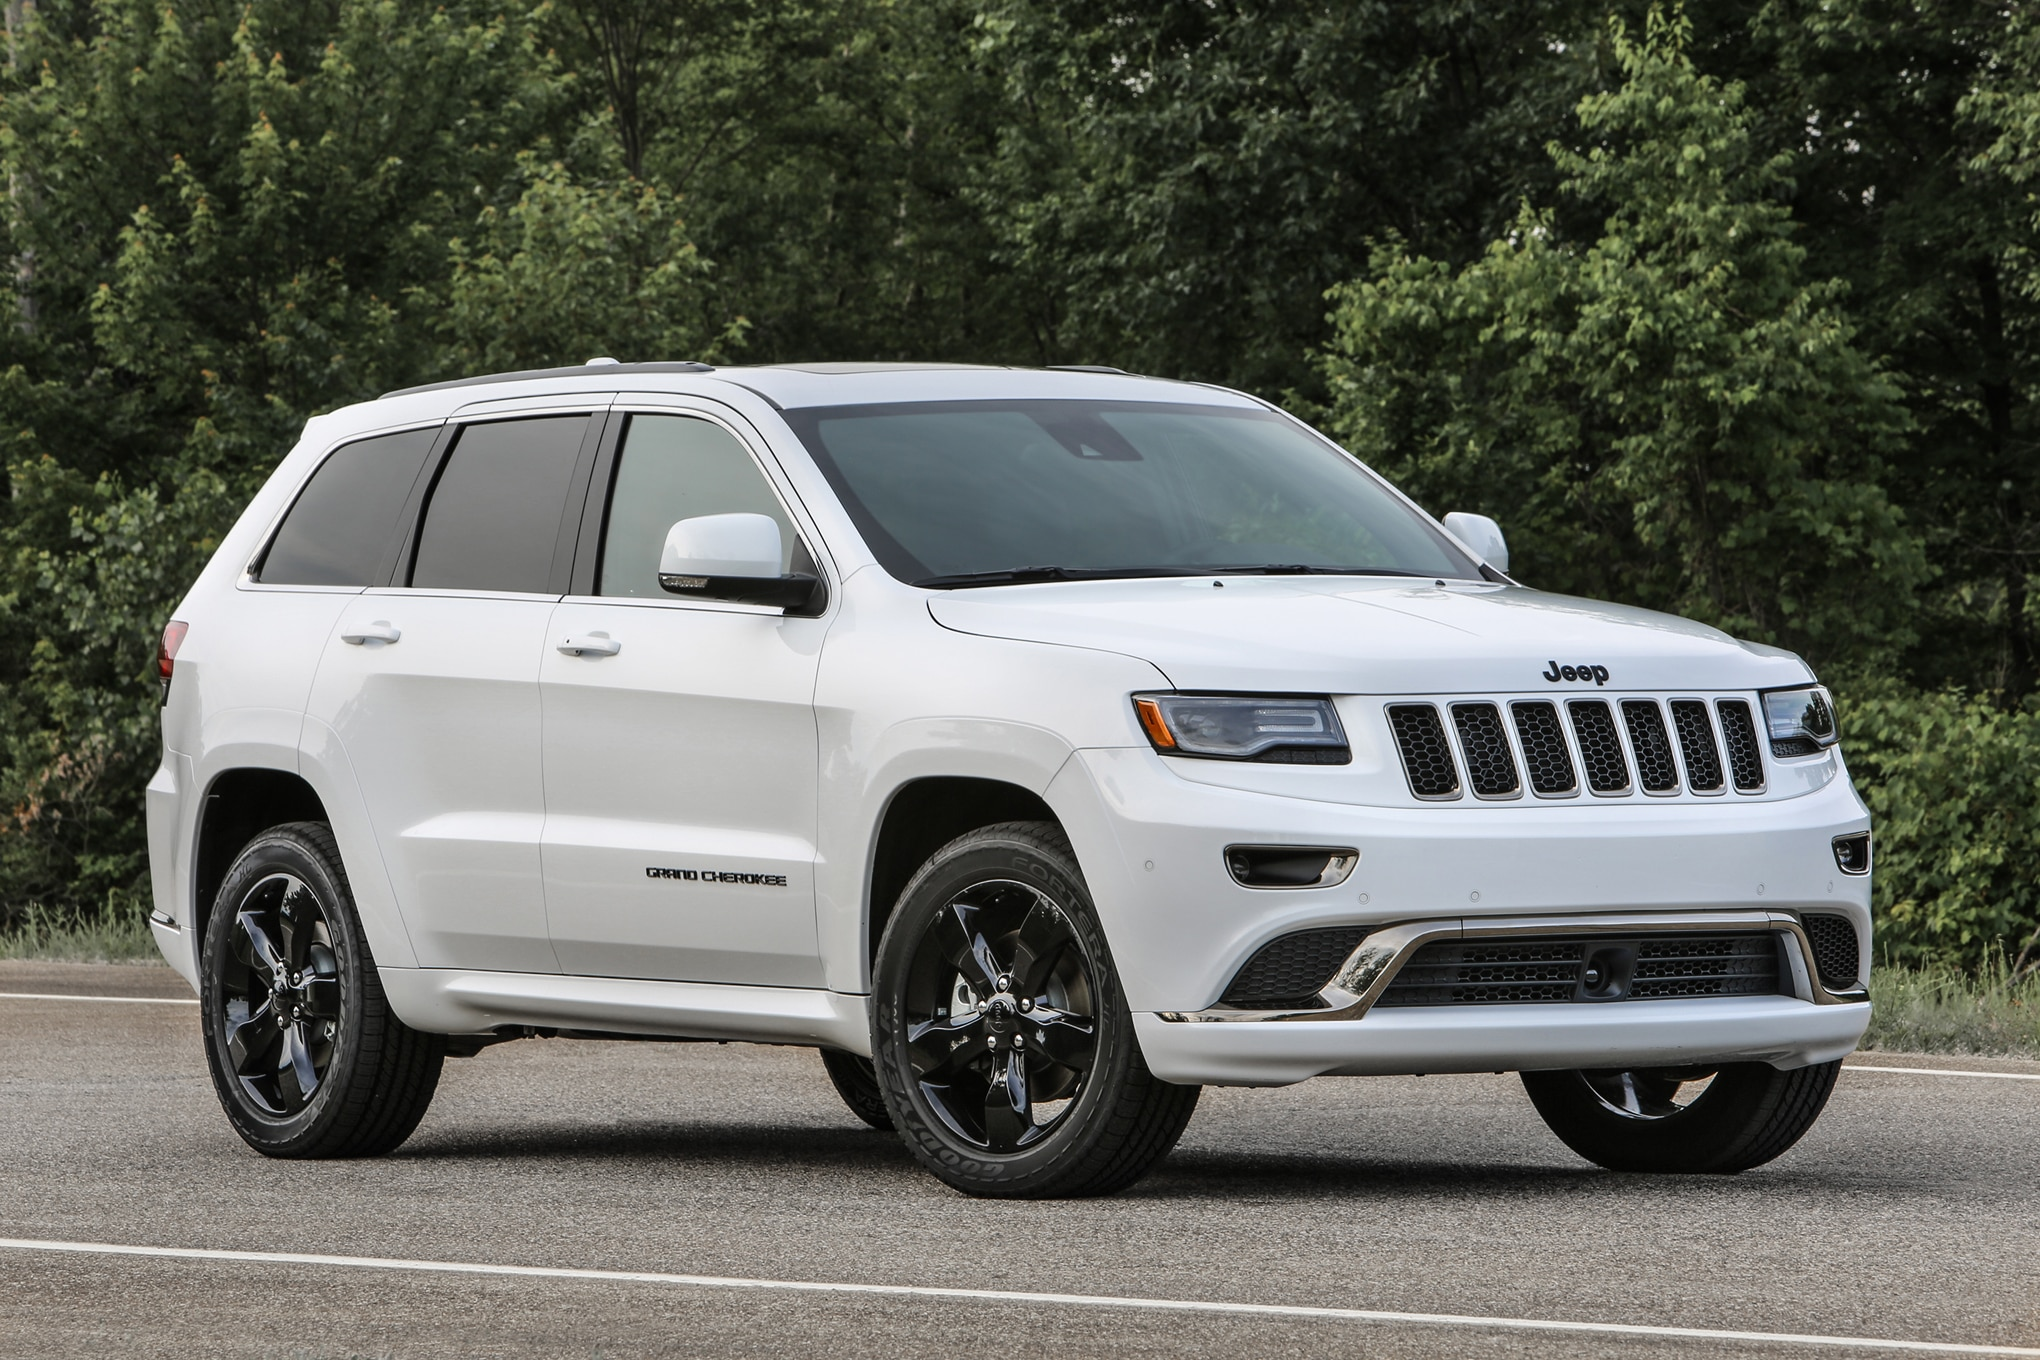 37 000 2016 jeep grand cherokee suvs being recalled for shifter issue. Black Bedroom Furniture Sets. Home Design Ideas